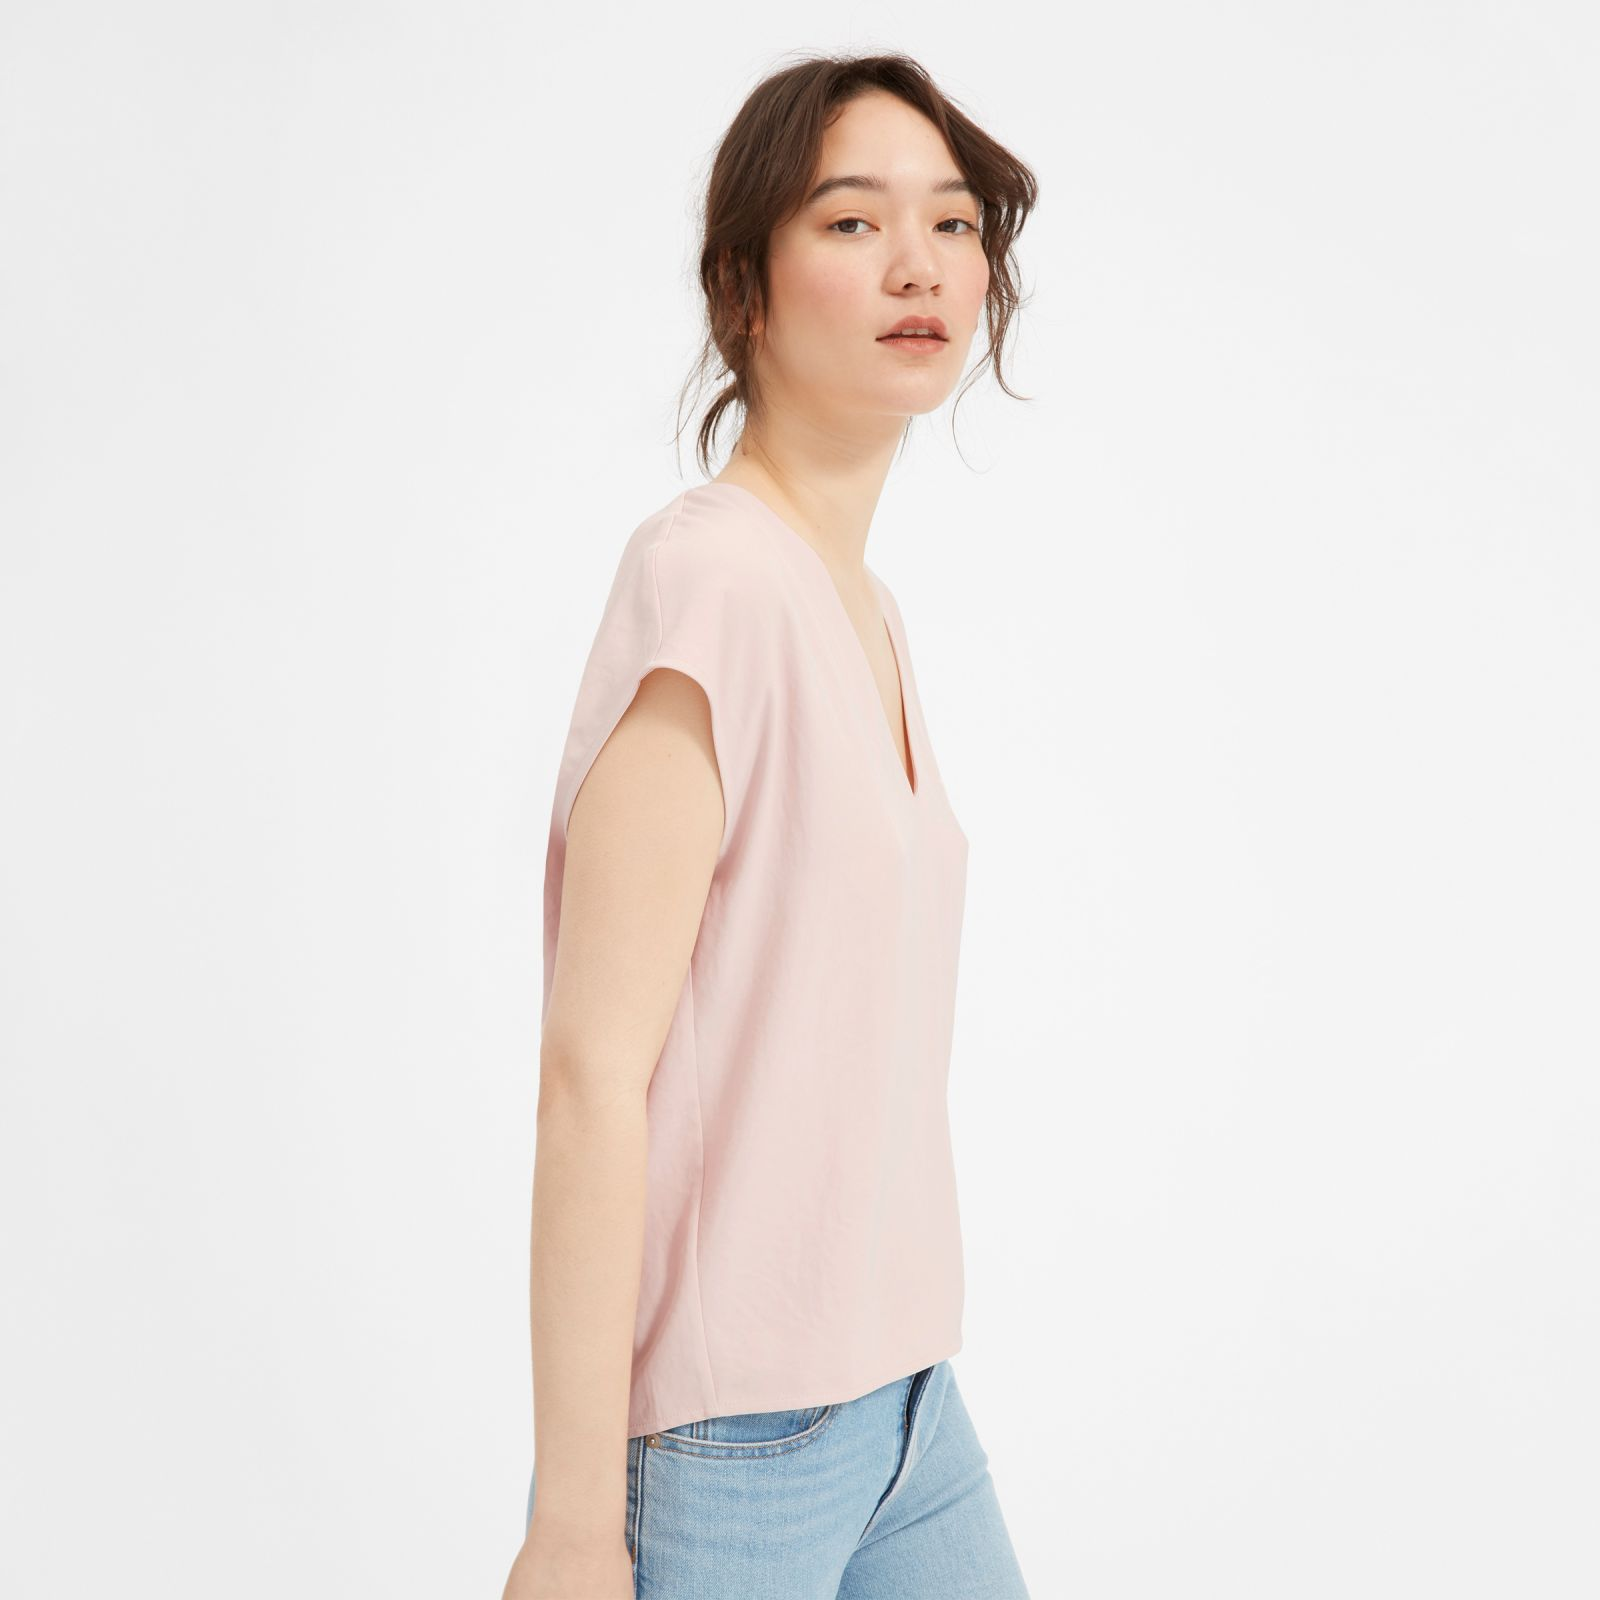 women's japanese goweave v-neck t-shirt by everlane in rose, size 16